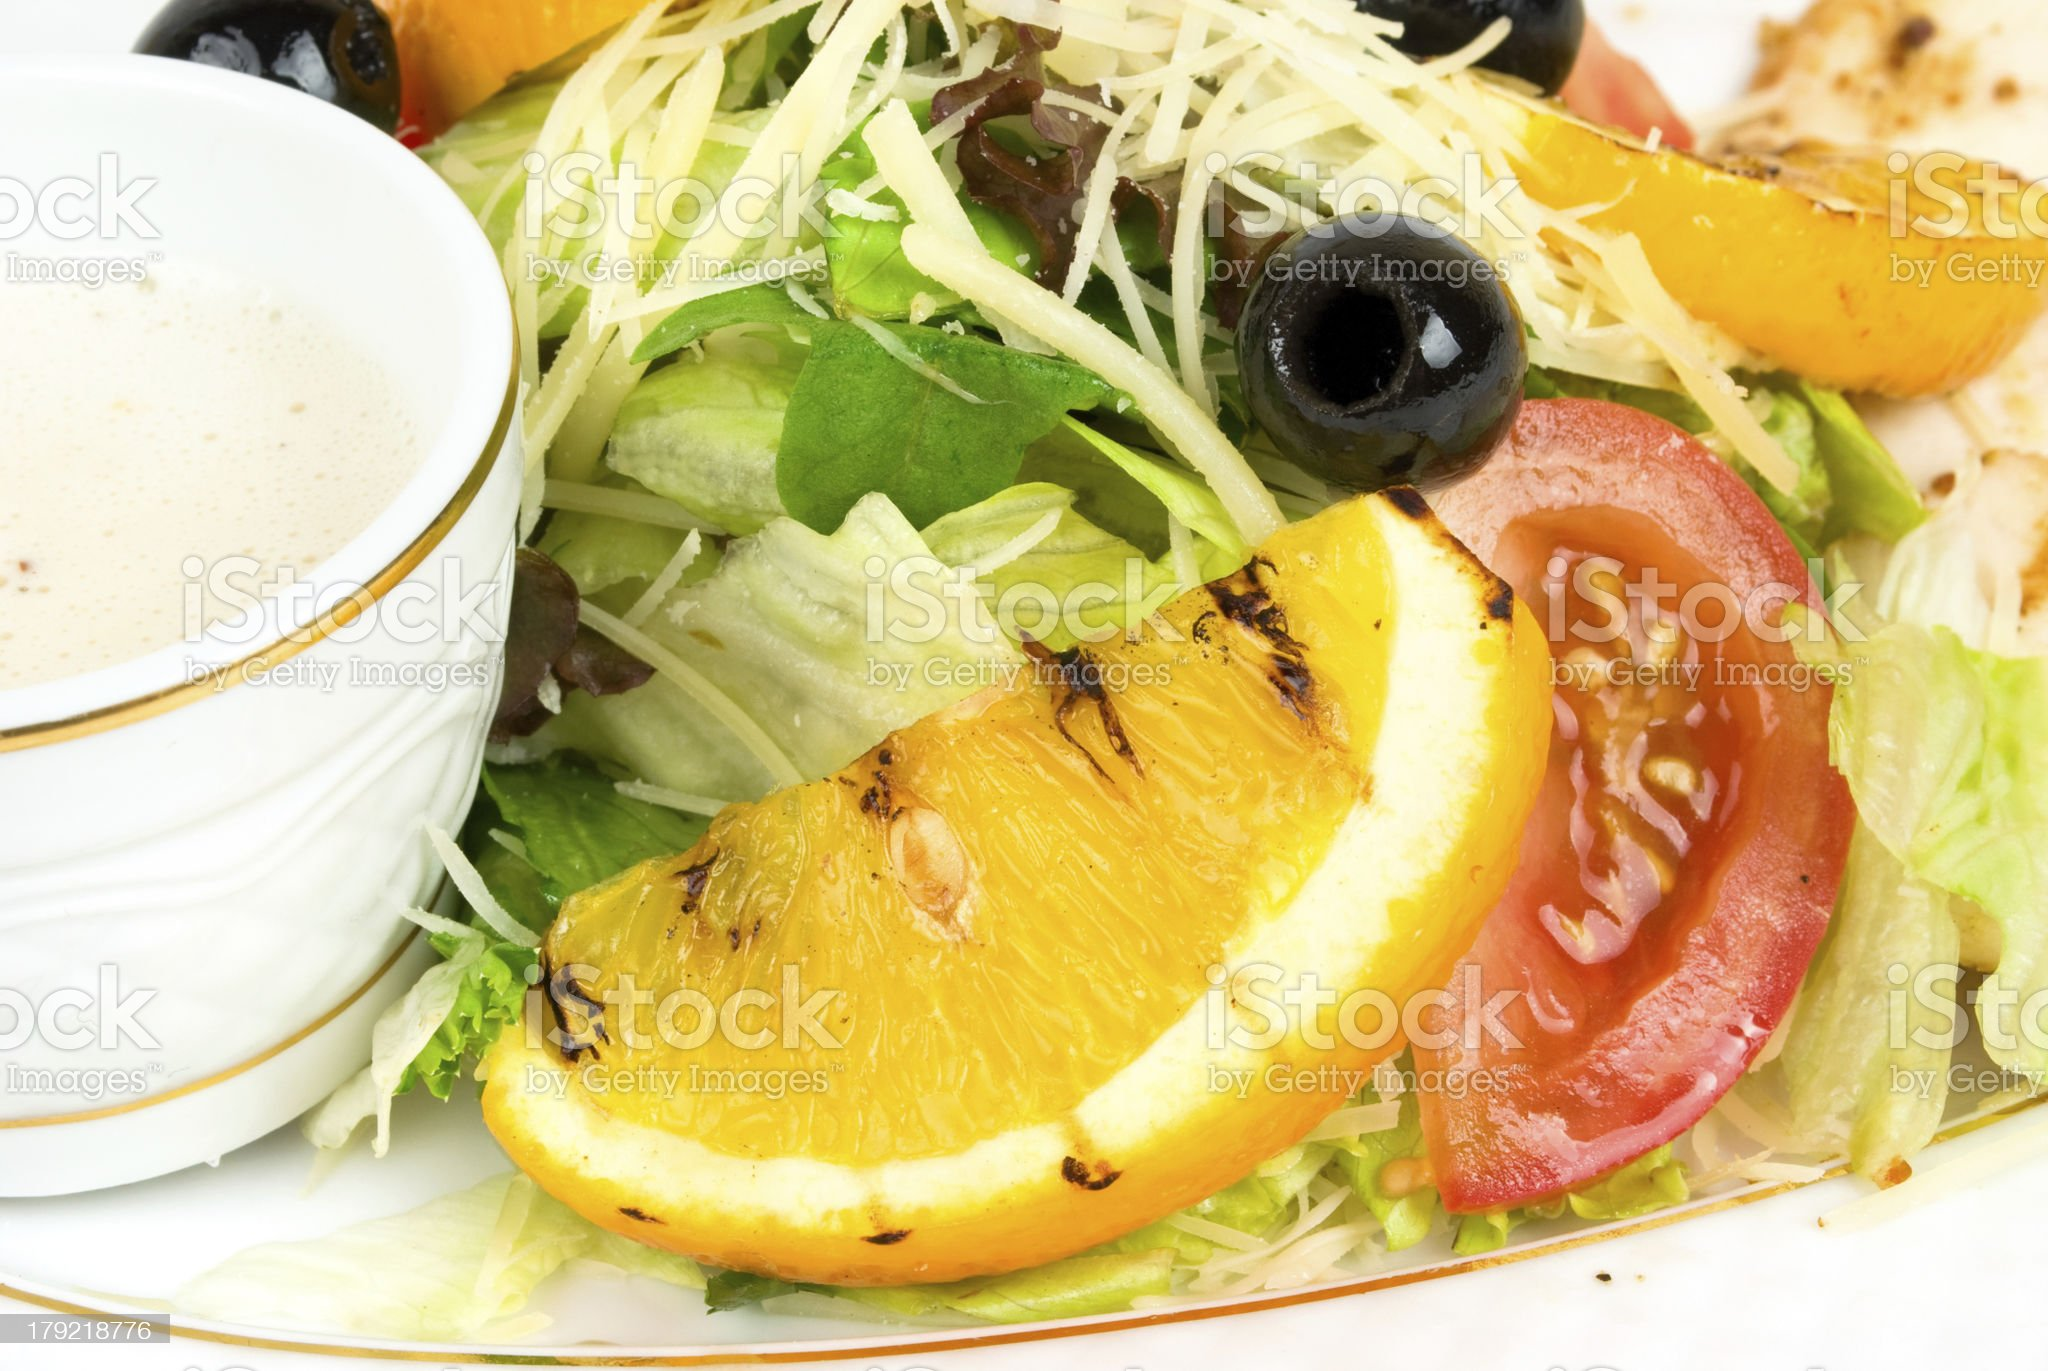 Platter of assorted fresh vegetables royalty-free stock photo